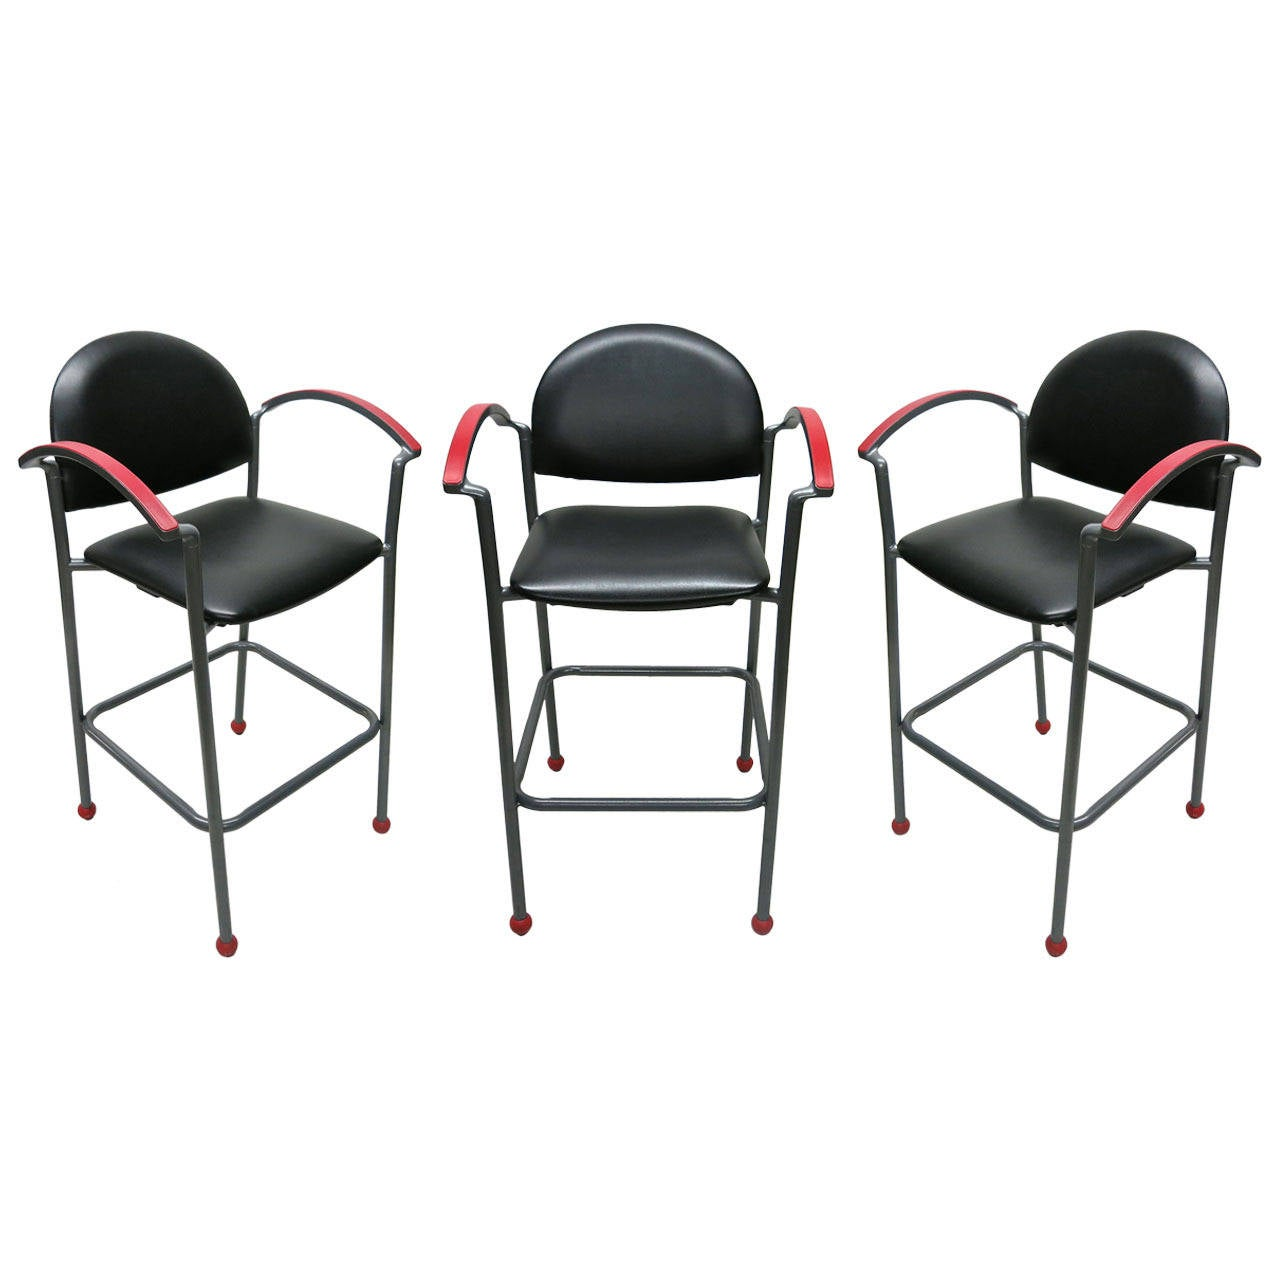 3 Barstools By Ron Kemnitzer For Fixtures Furniture Usa At